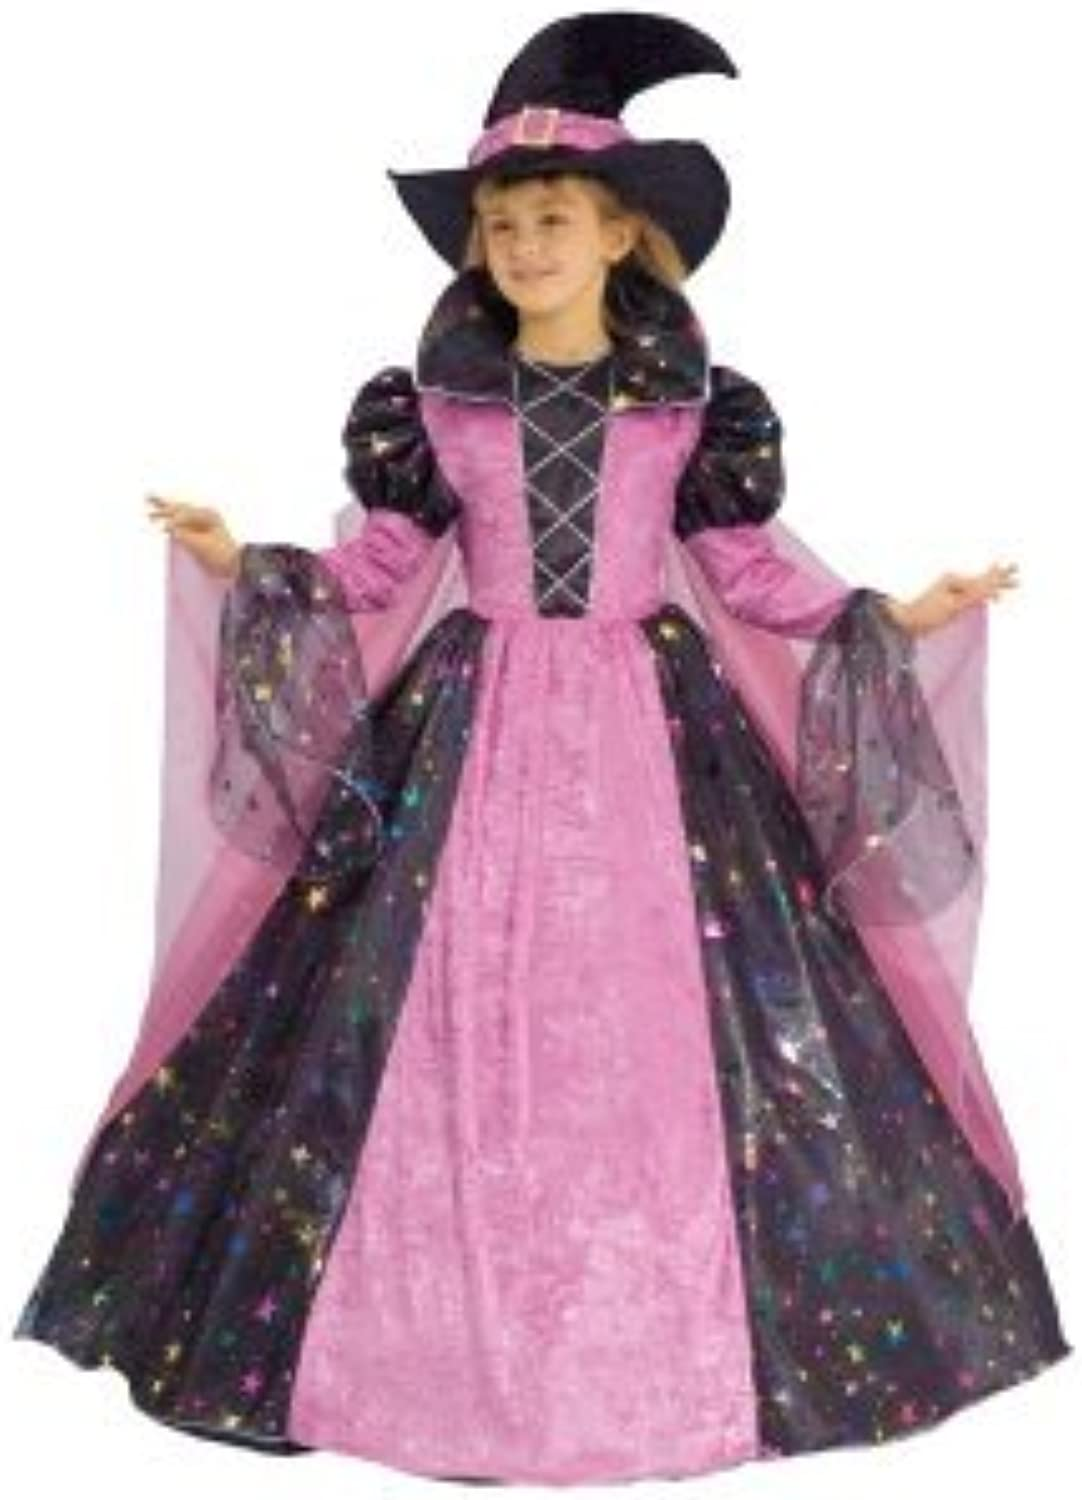 Dress up America Toddler T2 Deluxe Witch Costume Set by Dress Up America